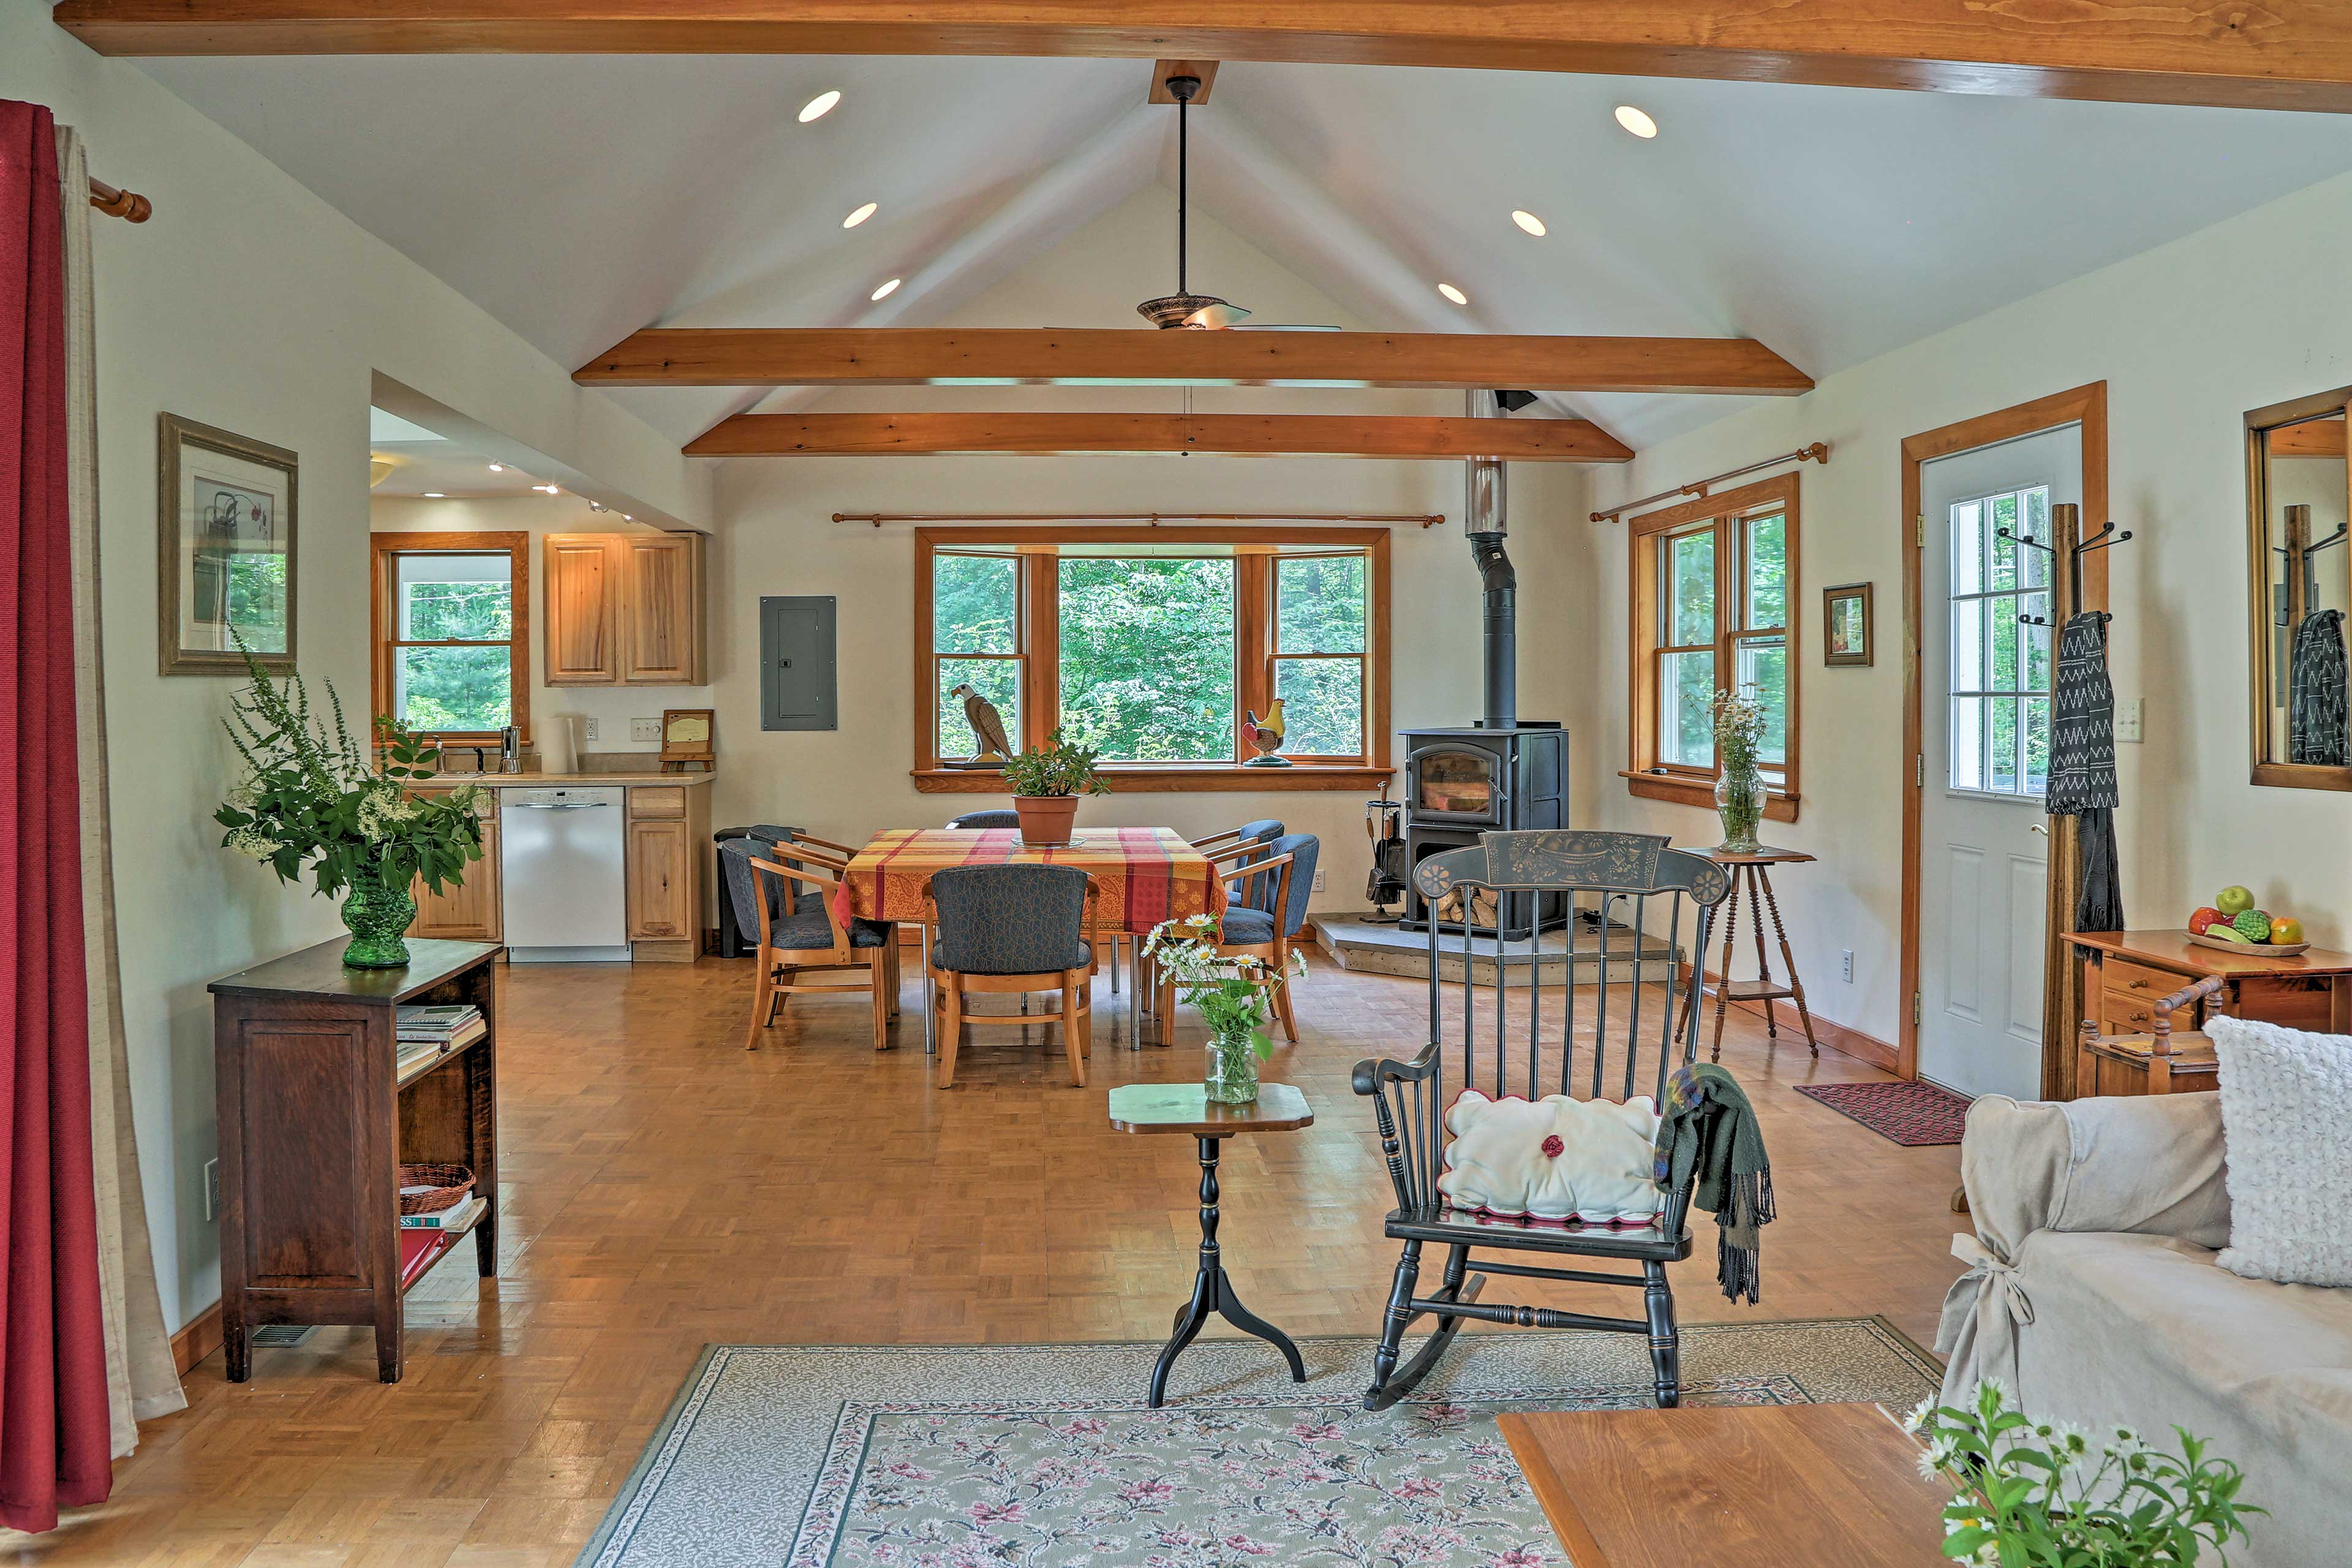 Exposed beams and vaulted ceilings create a spacious interior.